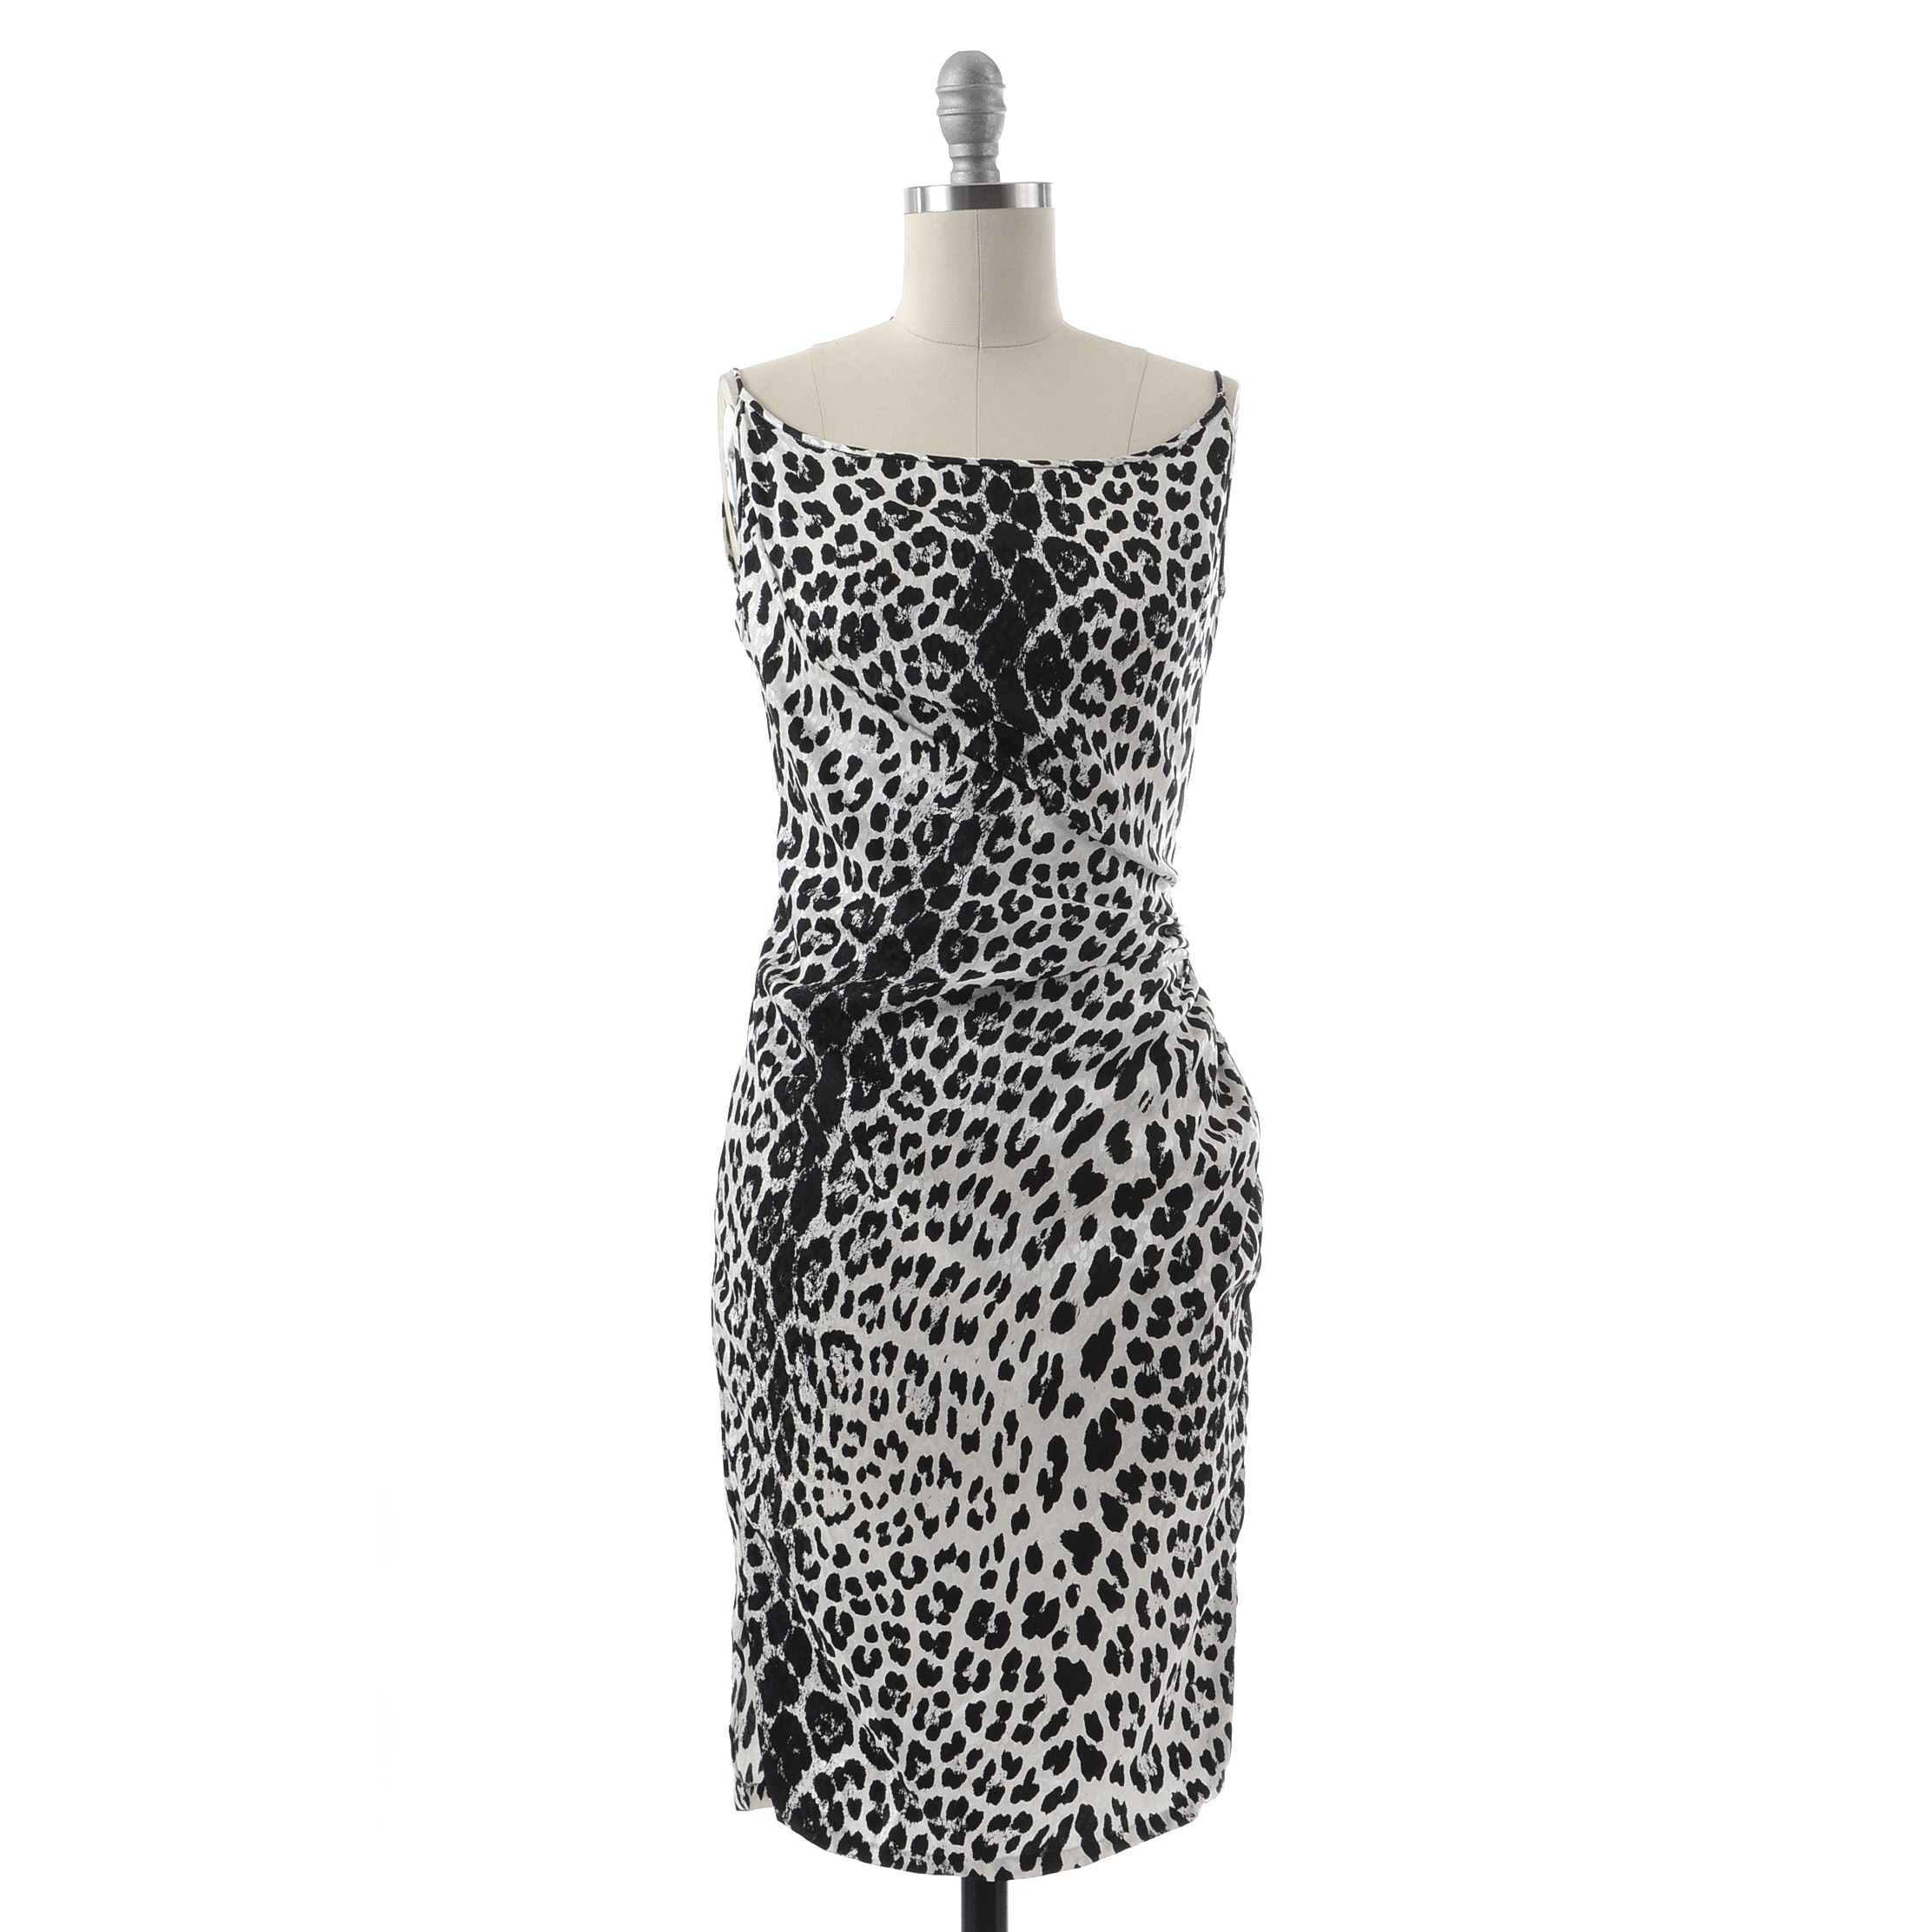 Emanuel Ungaro of Paris Parallele Sleeveless Black and White Silk Leopard Print Cocktail Dress with Ruching